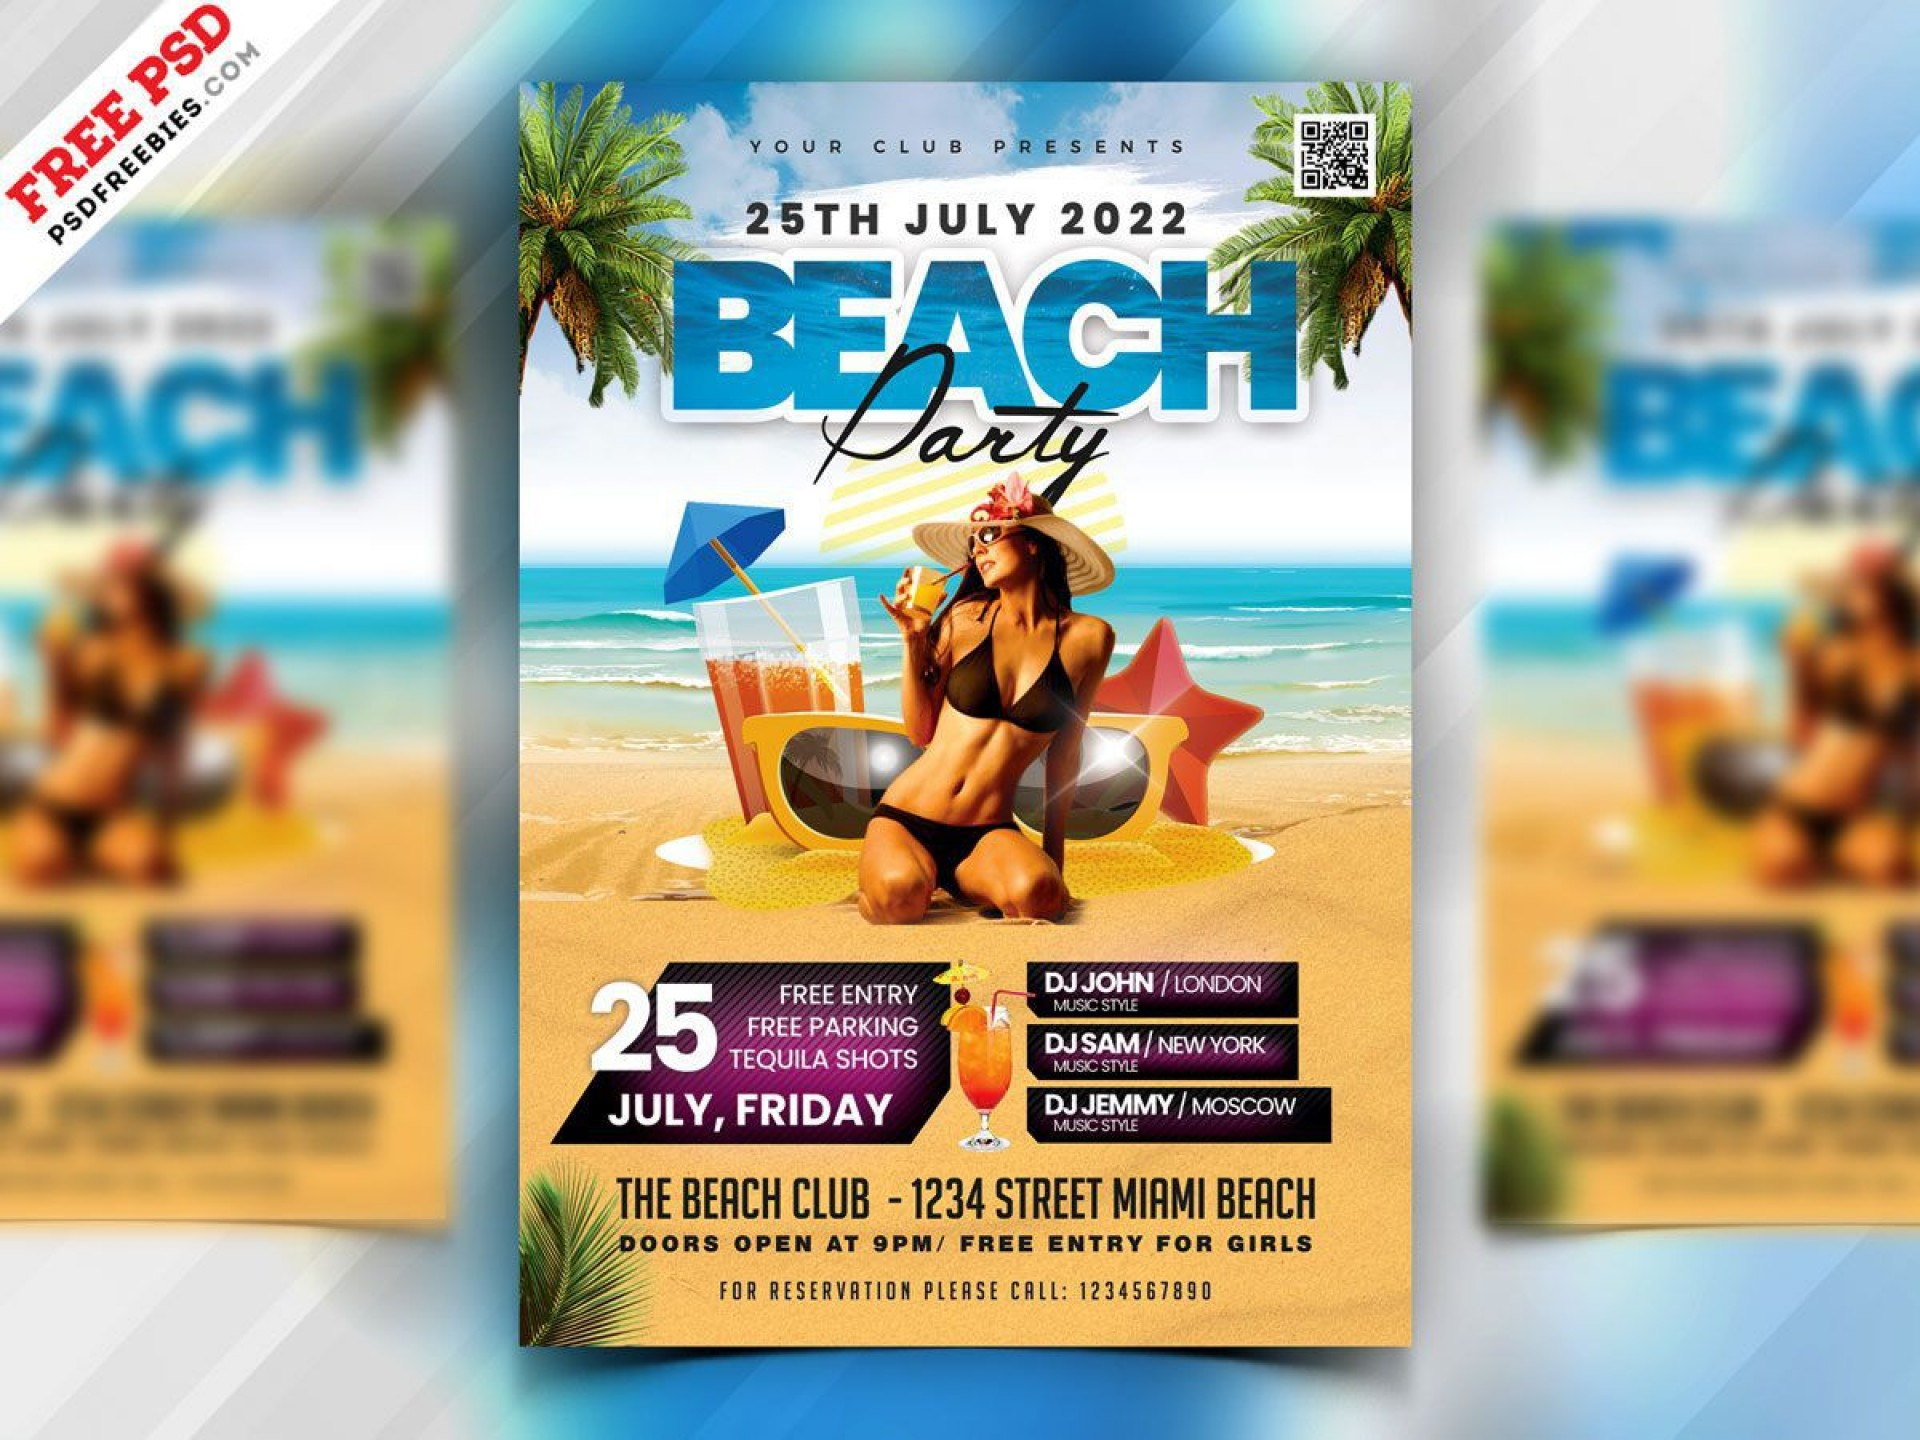 006 Awful Summer Party Flyer Template Free Download Idea 1920